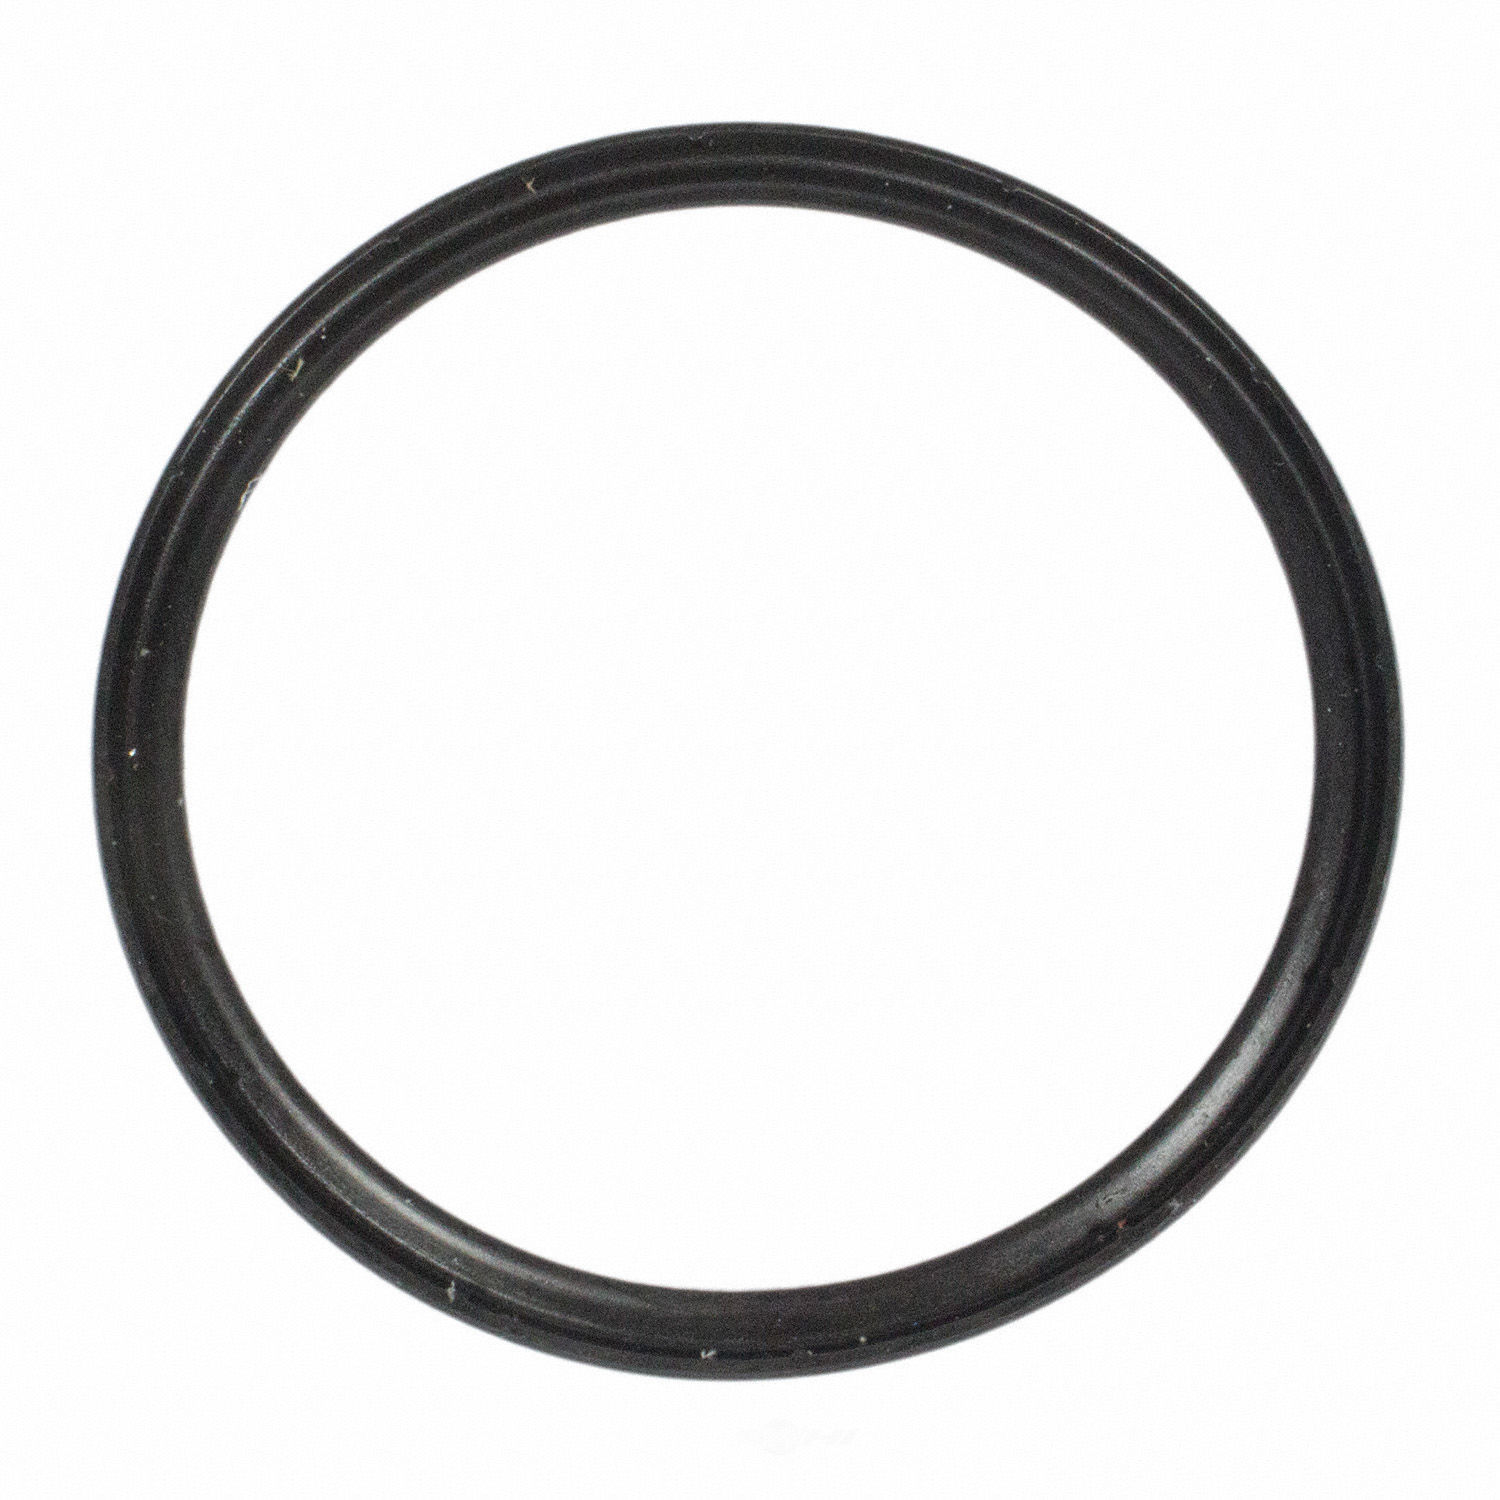 Motorcraft Engine Coolant Recovery Tank Seal Part Number Rts 1084 Autobarn Replacement Parts Catalog Autobarn Net